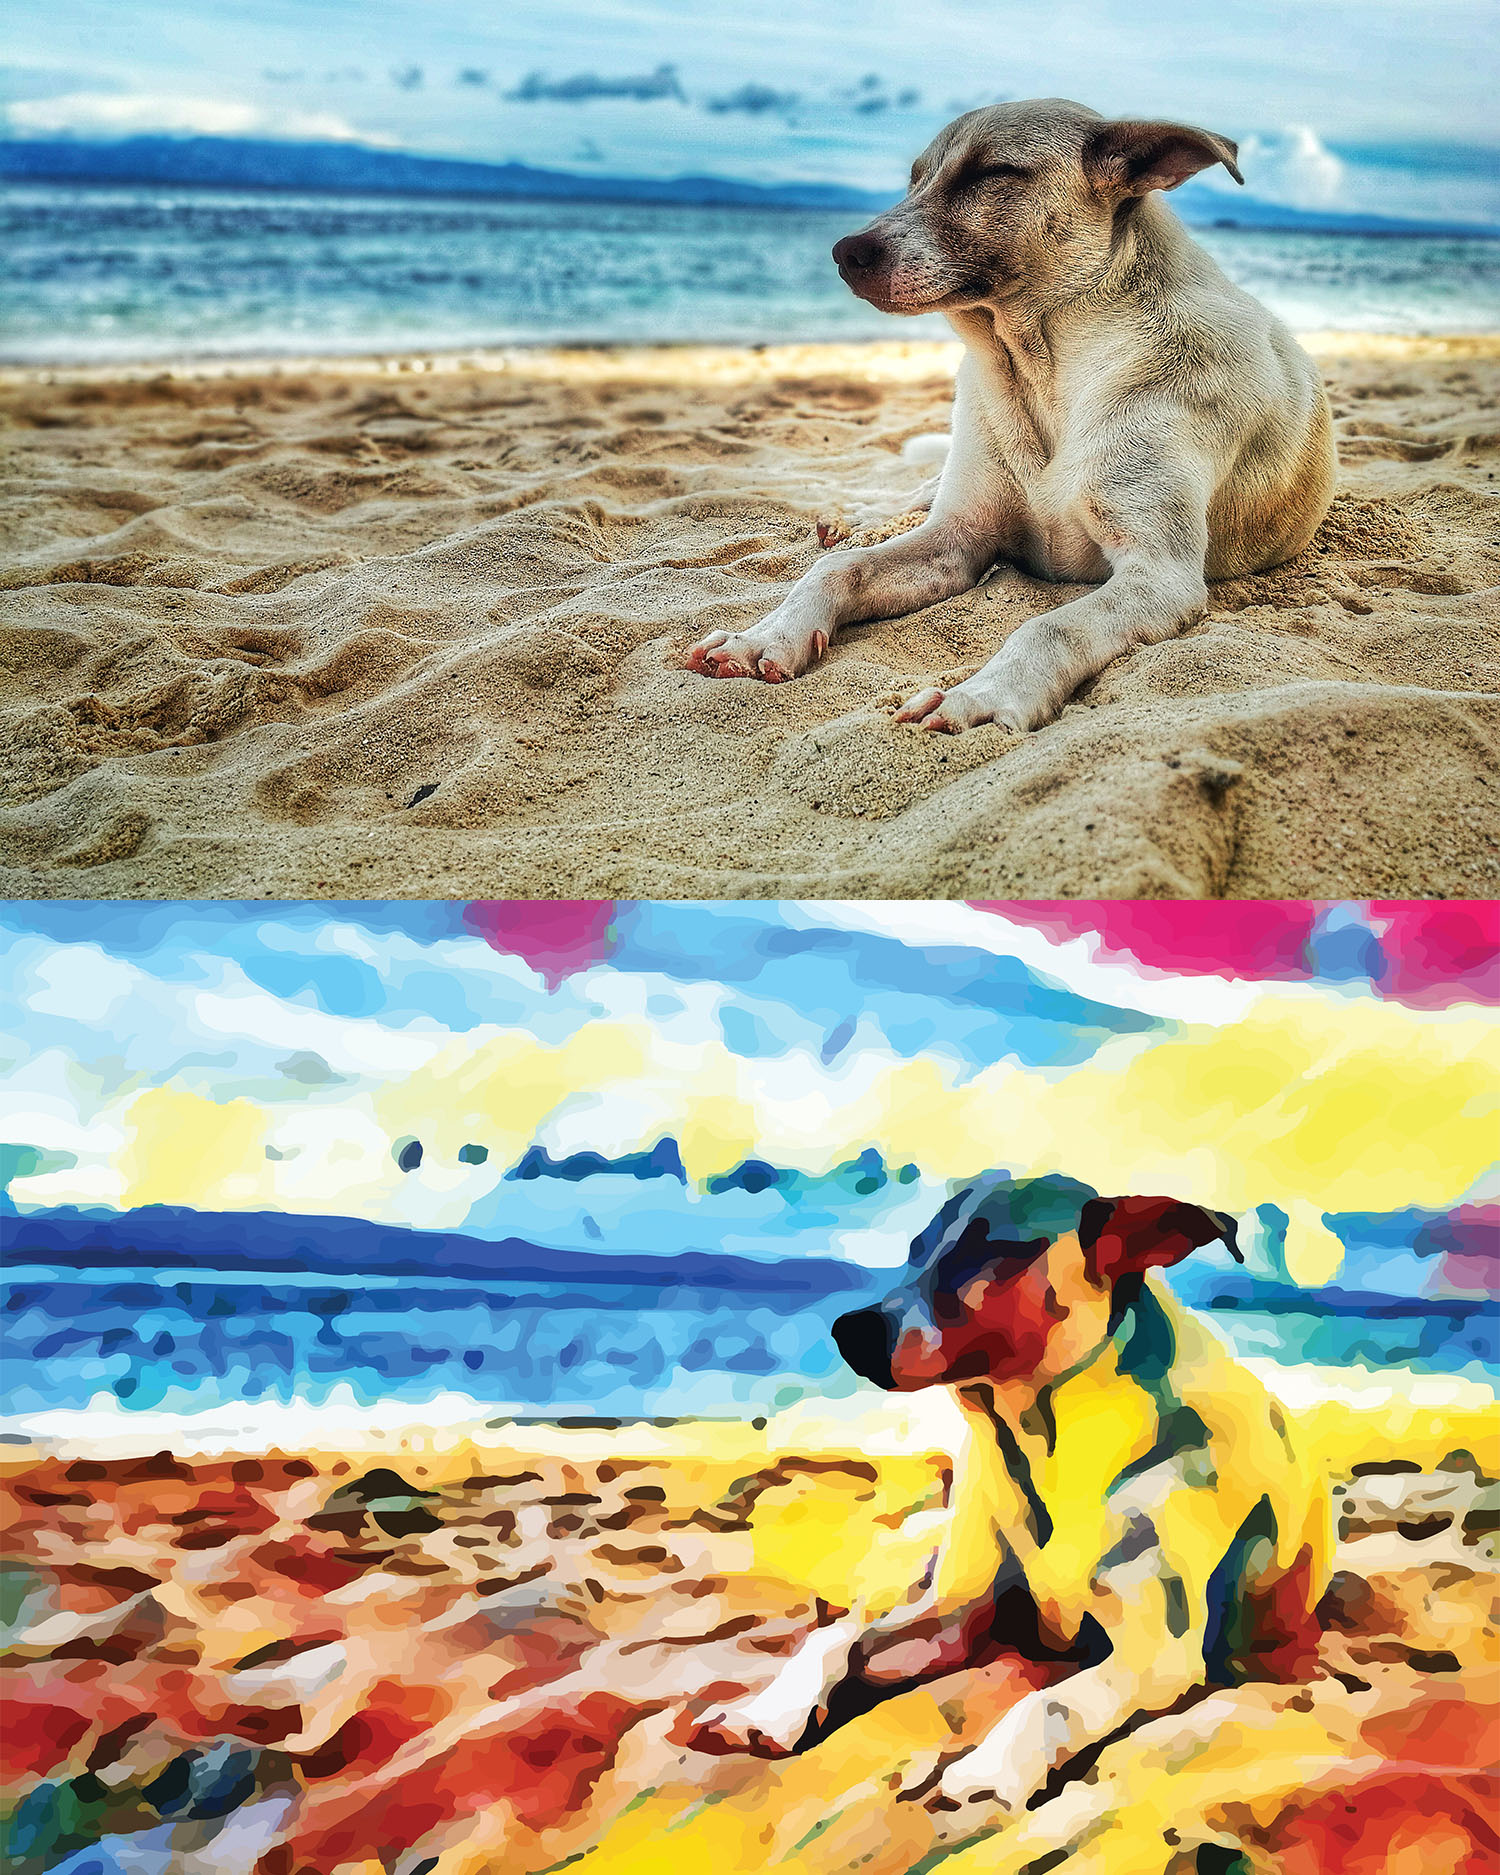 Before and after stylized image of a dog with closed eyes lying on a beach